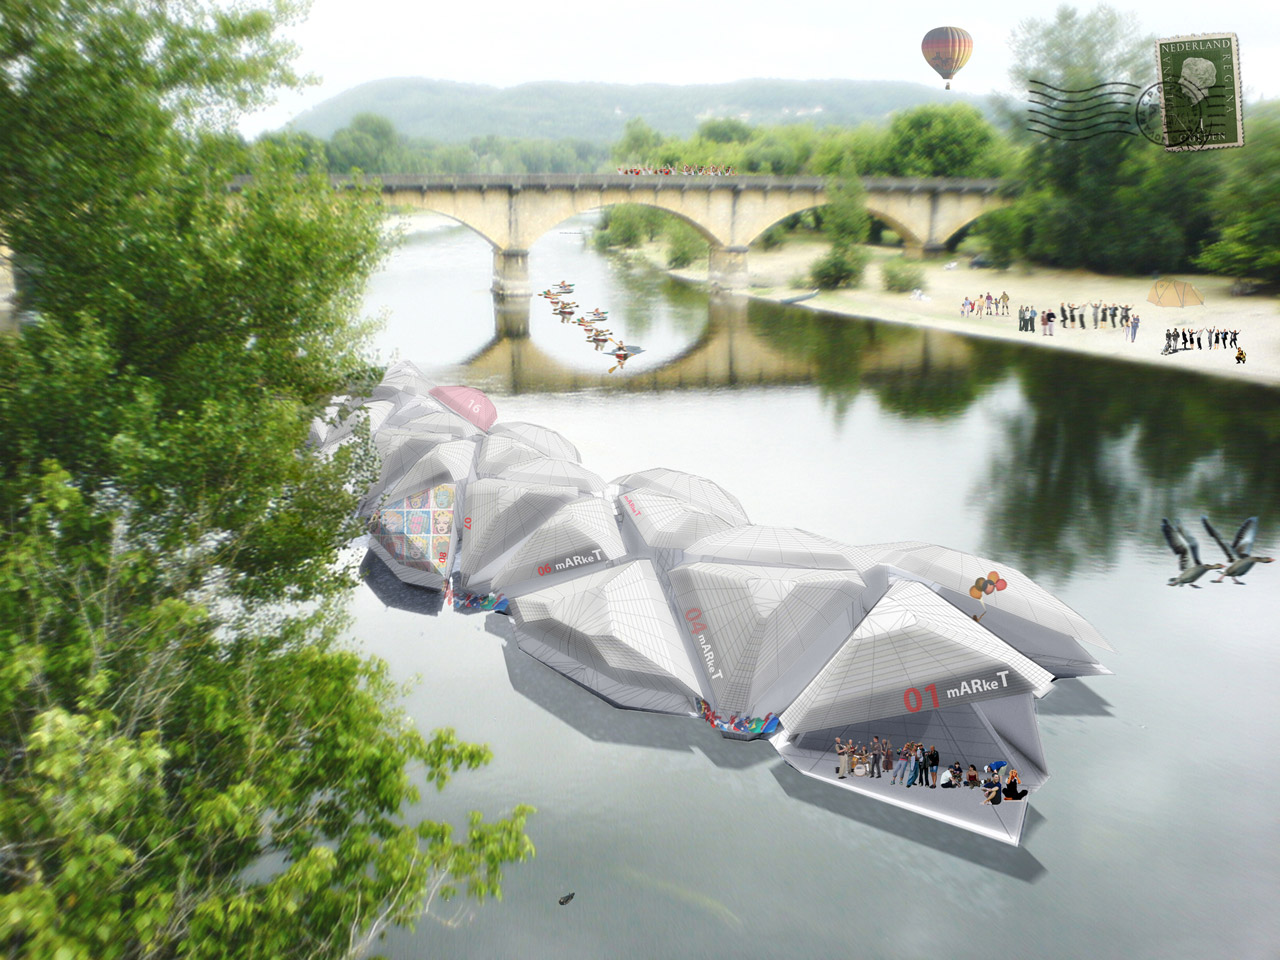 Travelling configuration: the modules closed and packed in a boat shape able to travel along rivers following the flow.